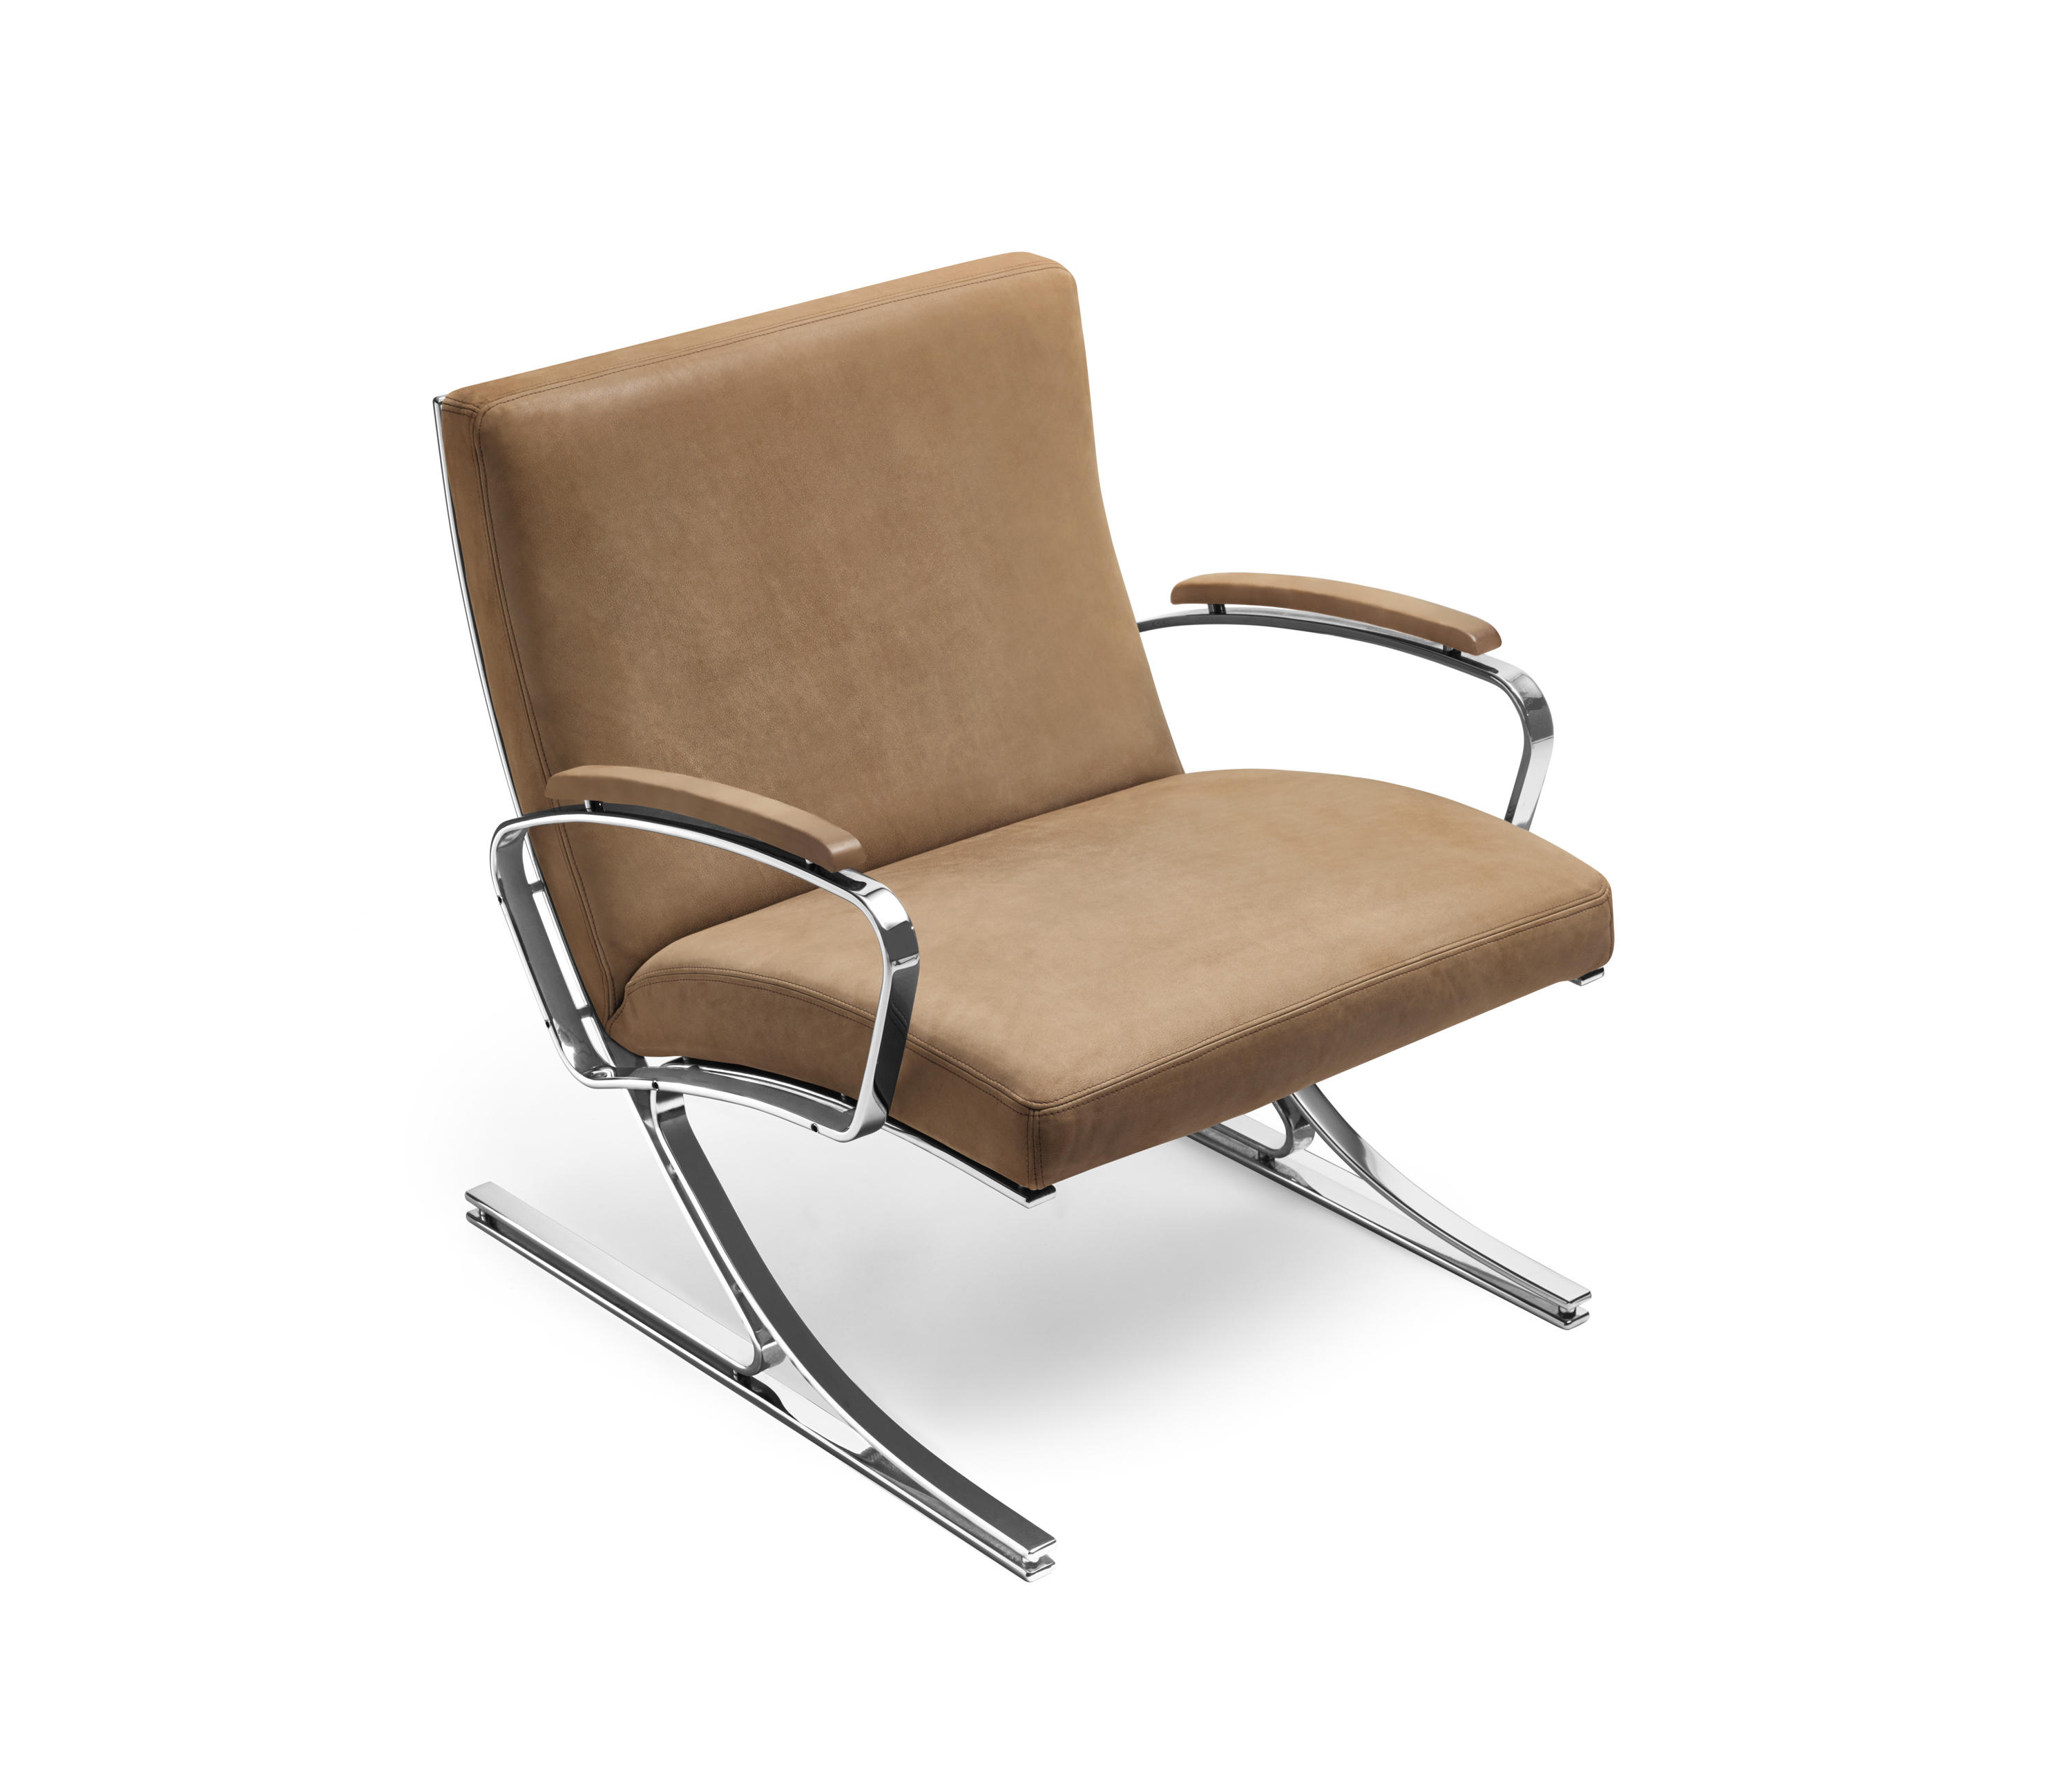 Sessel Berlin Berlin Chair Sessel Von Walter K Architonic